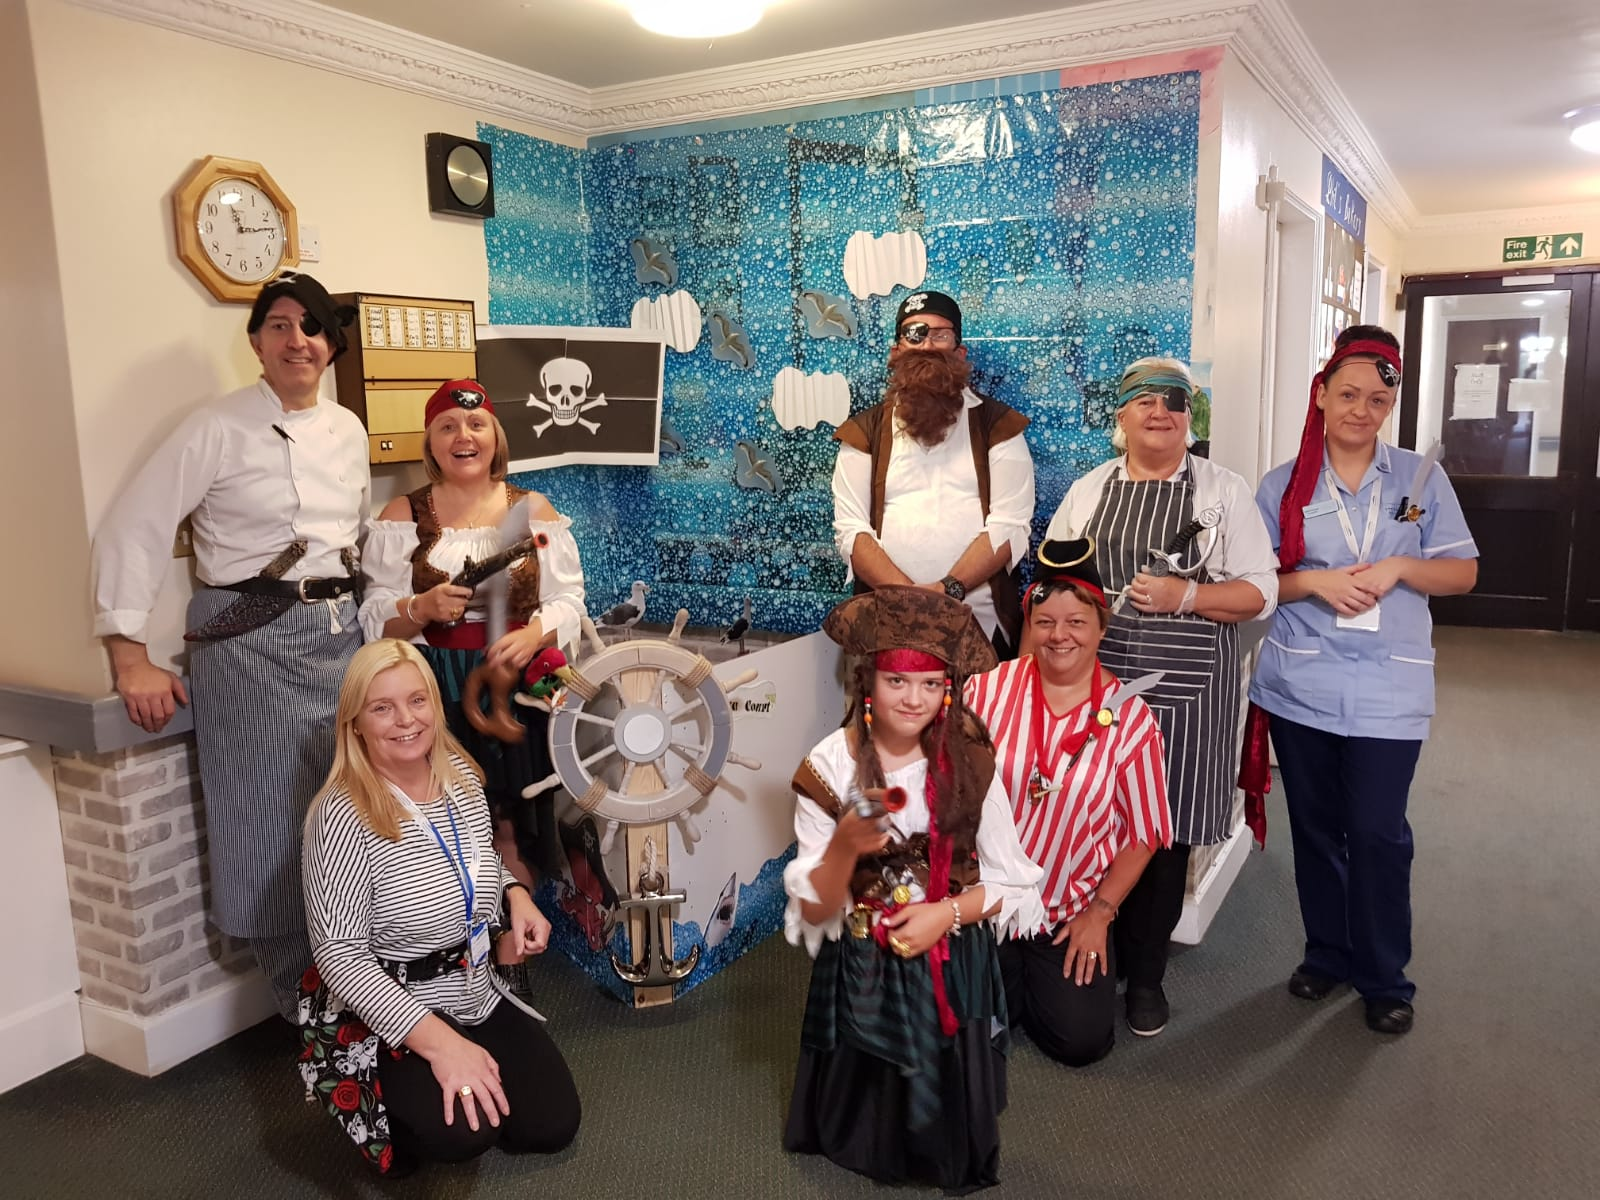 Pirate Themed Fancy Dress Party Elizabeth Court Care Centre: Key Healthcare is dedicated to caring for elderly residents in safe. We have multiple dementia care homes including our care home middlesbrough, our care home St. Helen and care home saltburn. We excel in monitoring and improving care levels.